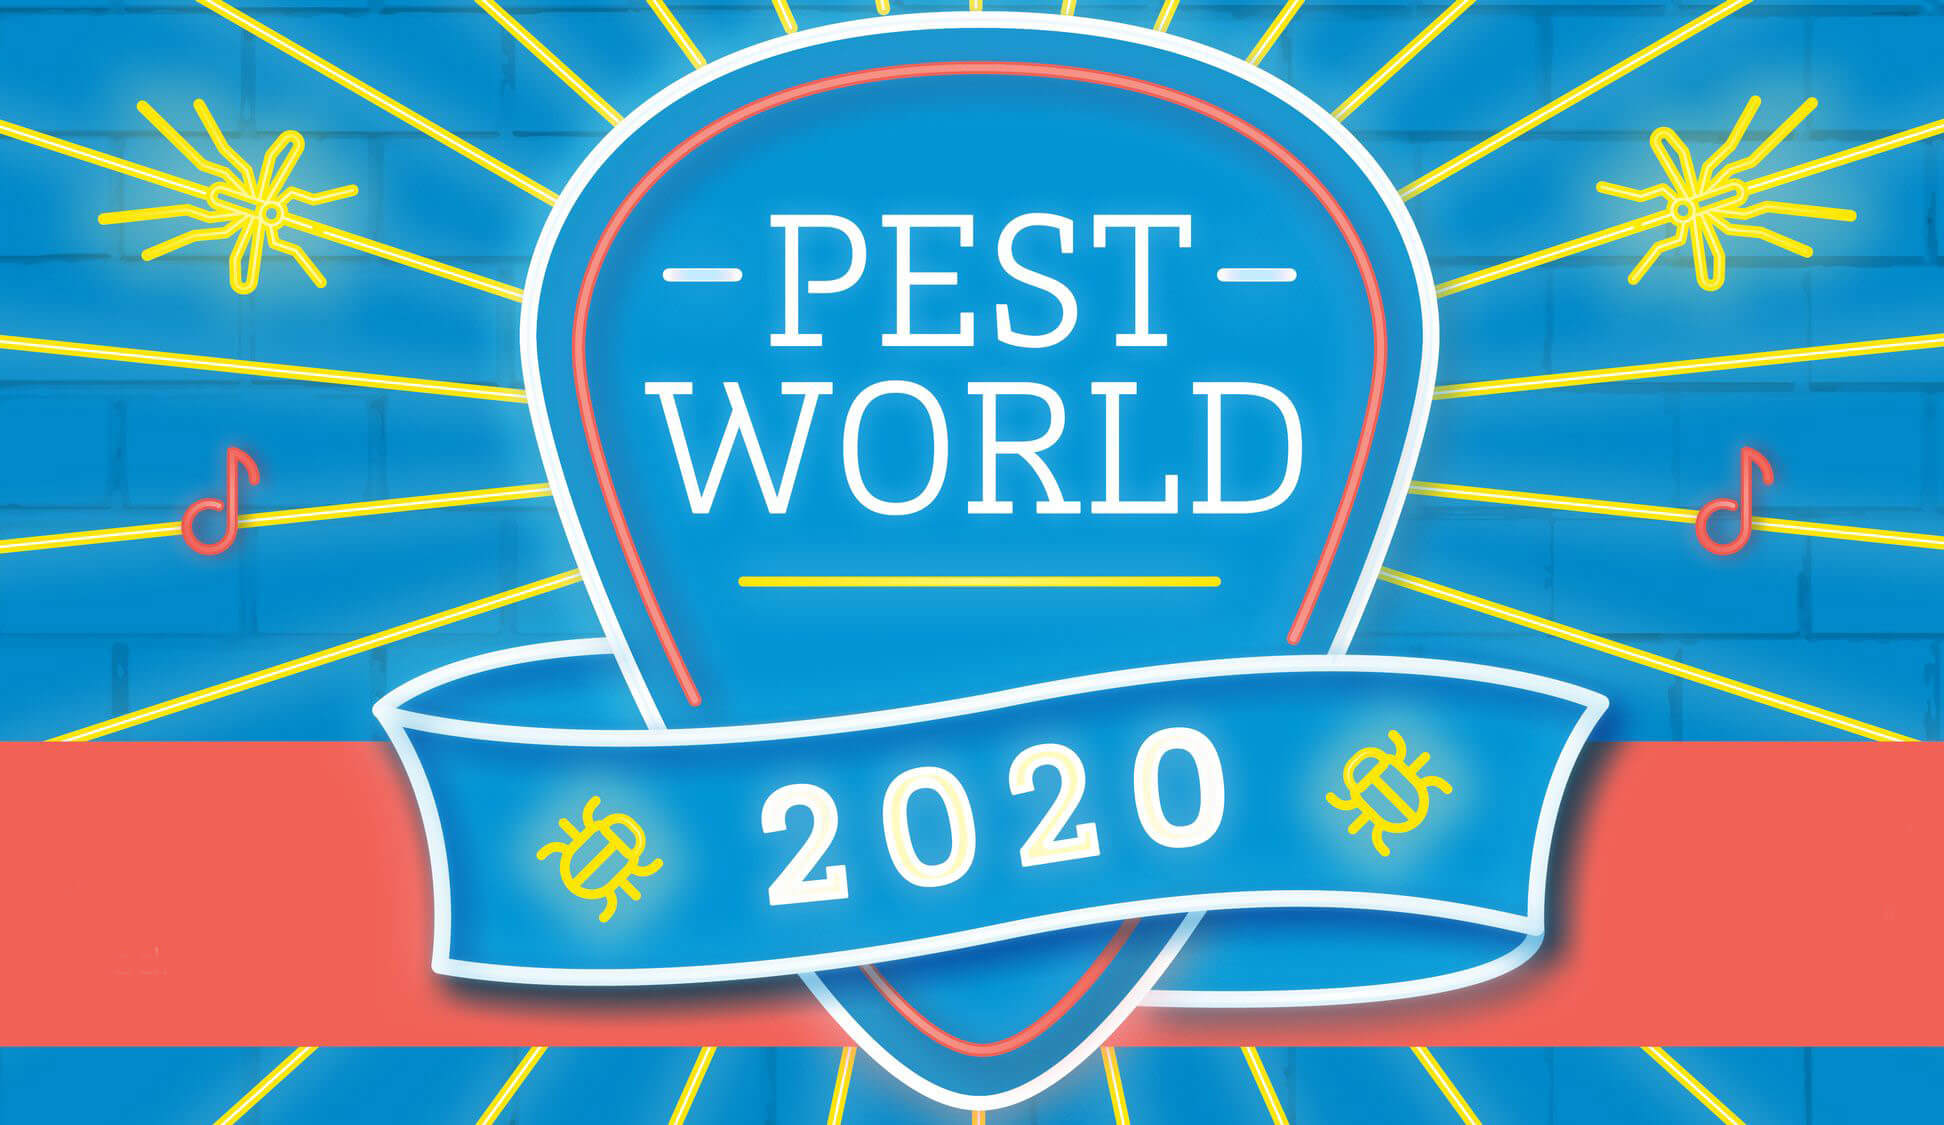 PestWorld 2020 Logo - blue circle surrounded by music notes and graphic pests